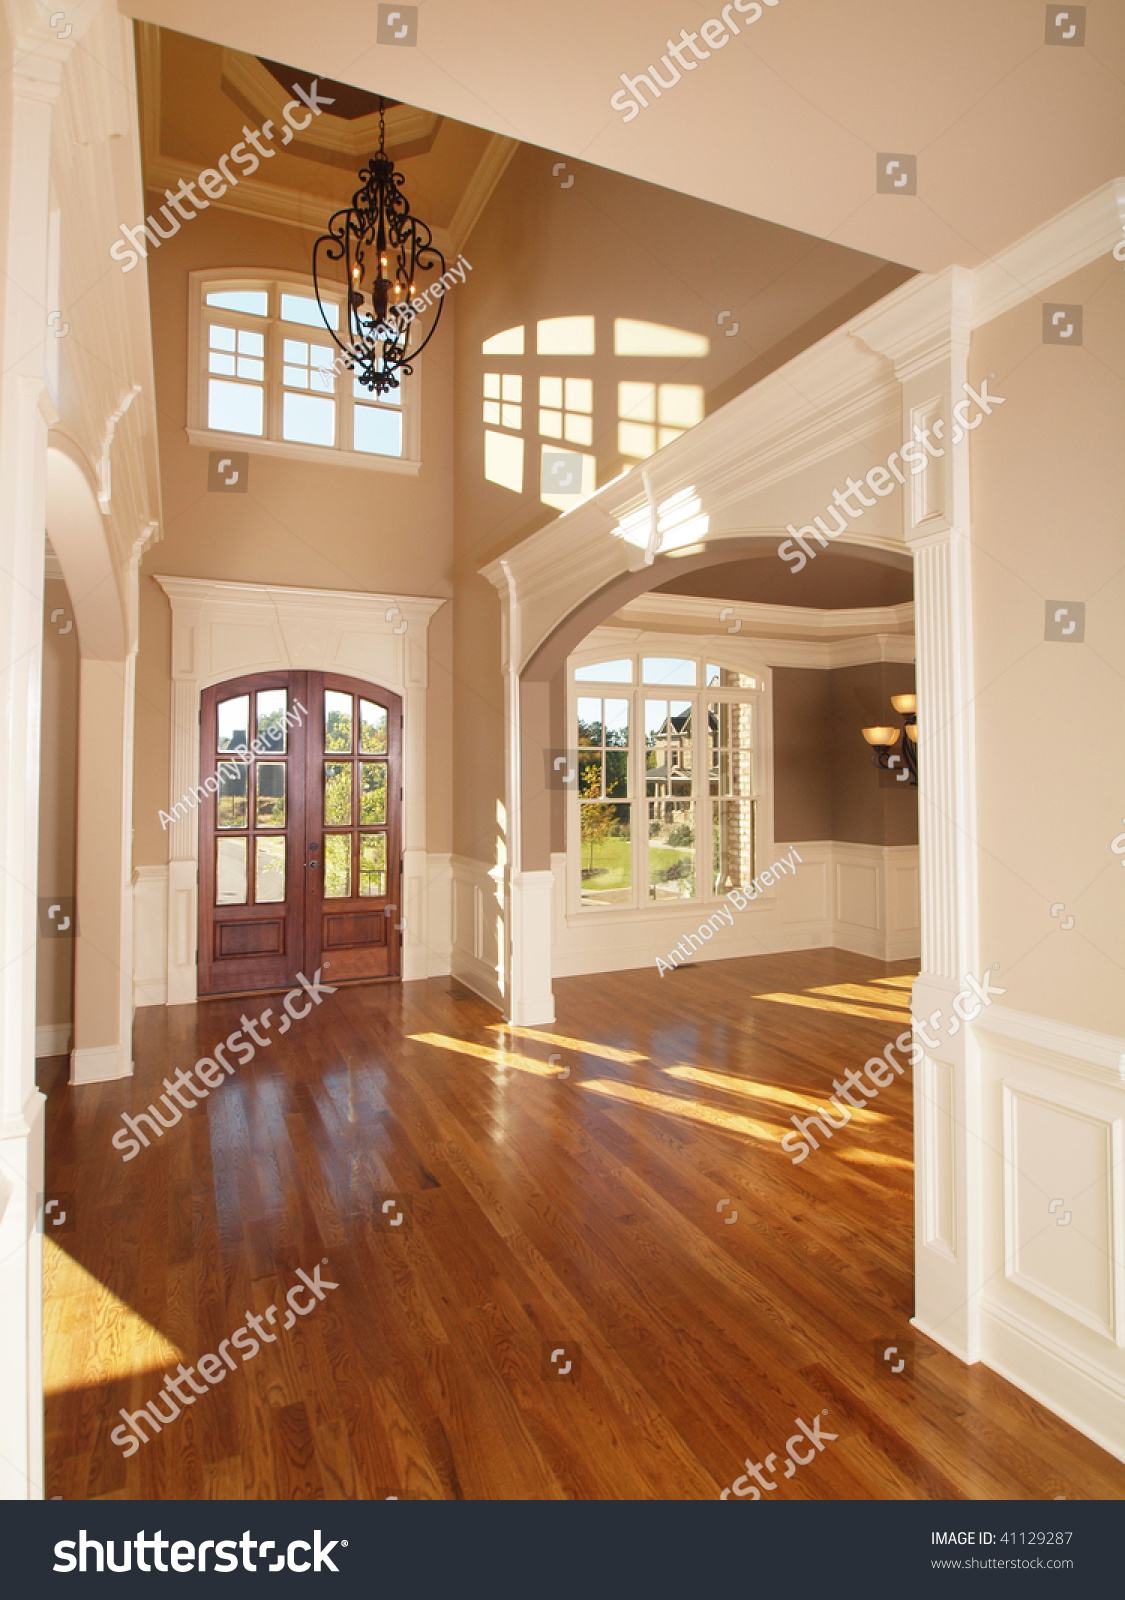 Model luxury home interior front entrance arch way stock for Model home interior photos